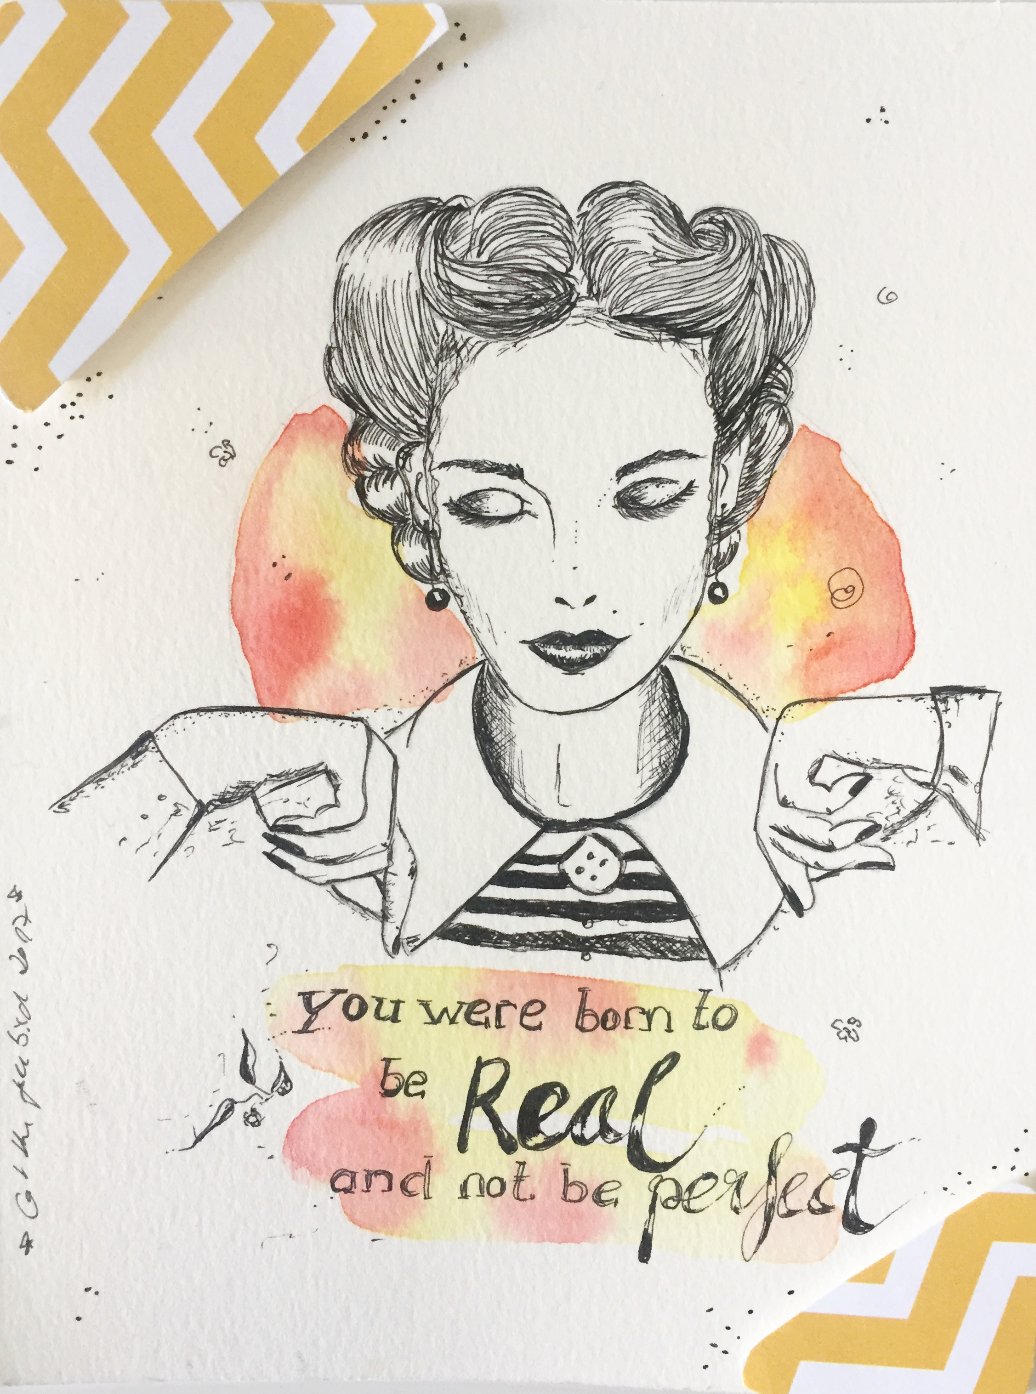 You were born to be real, not to be